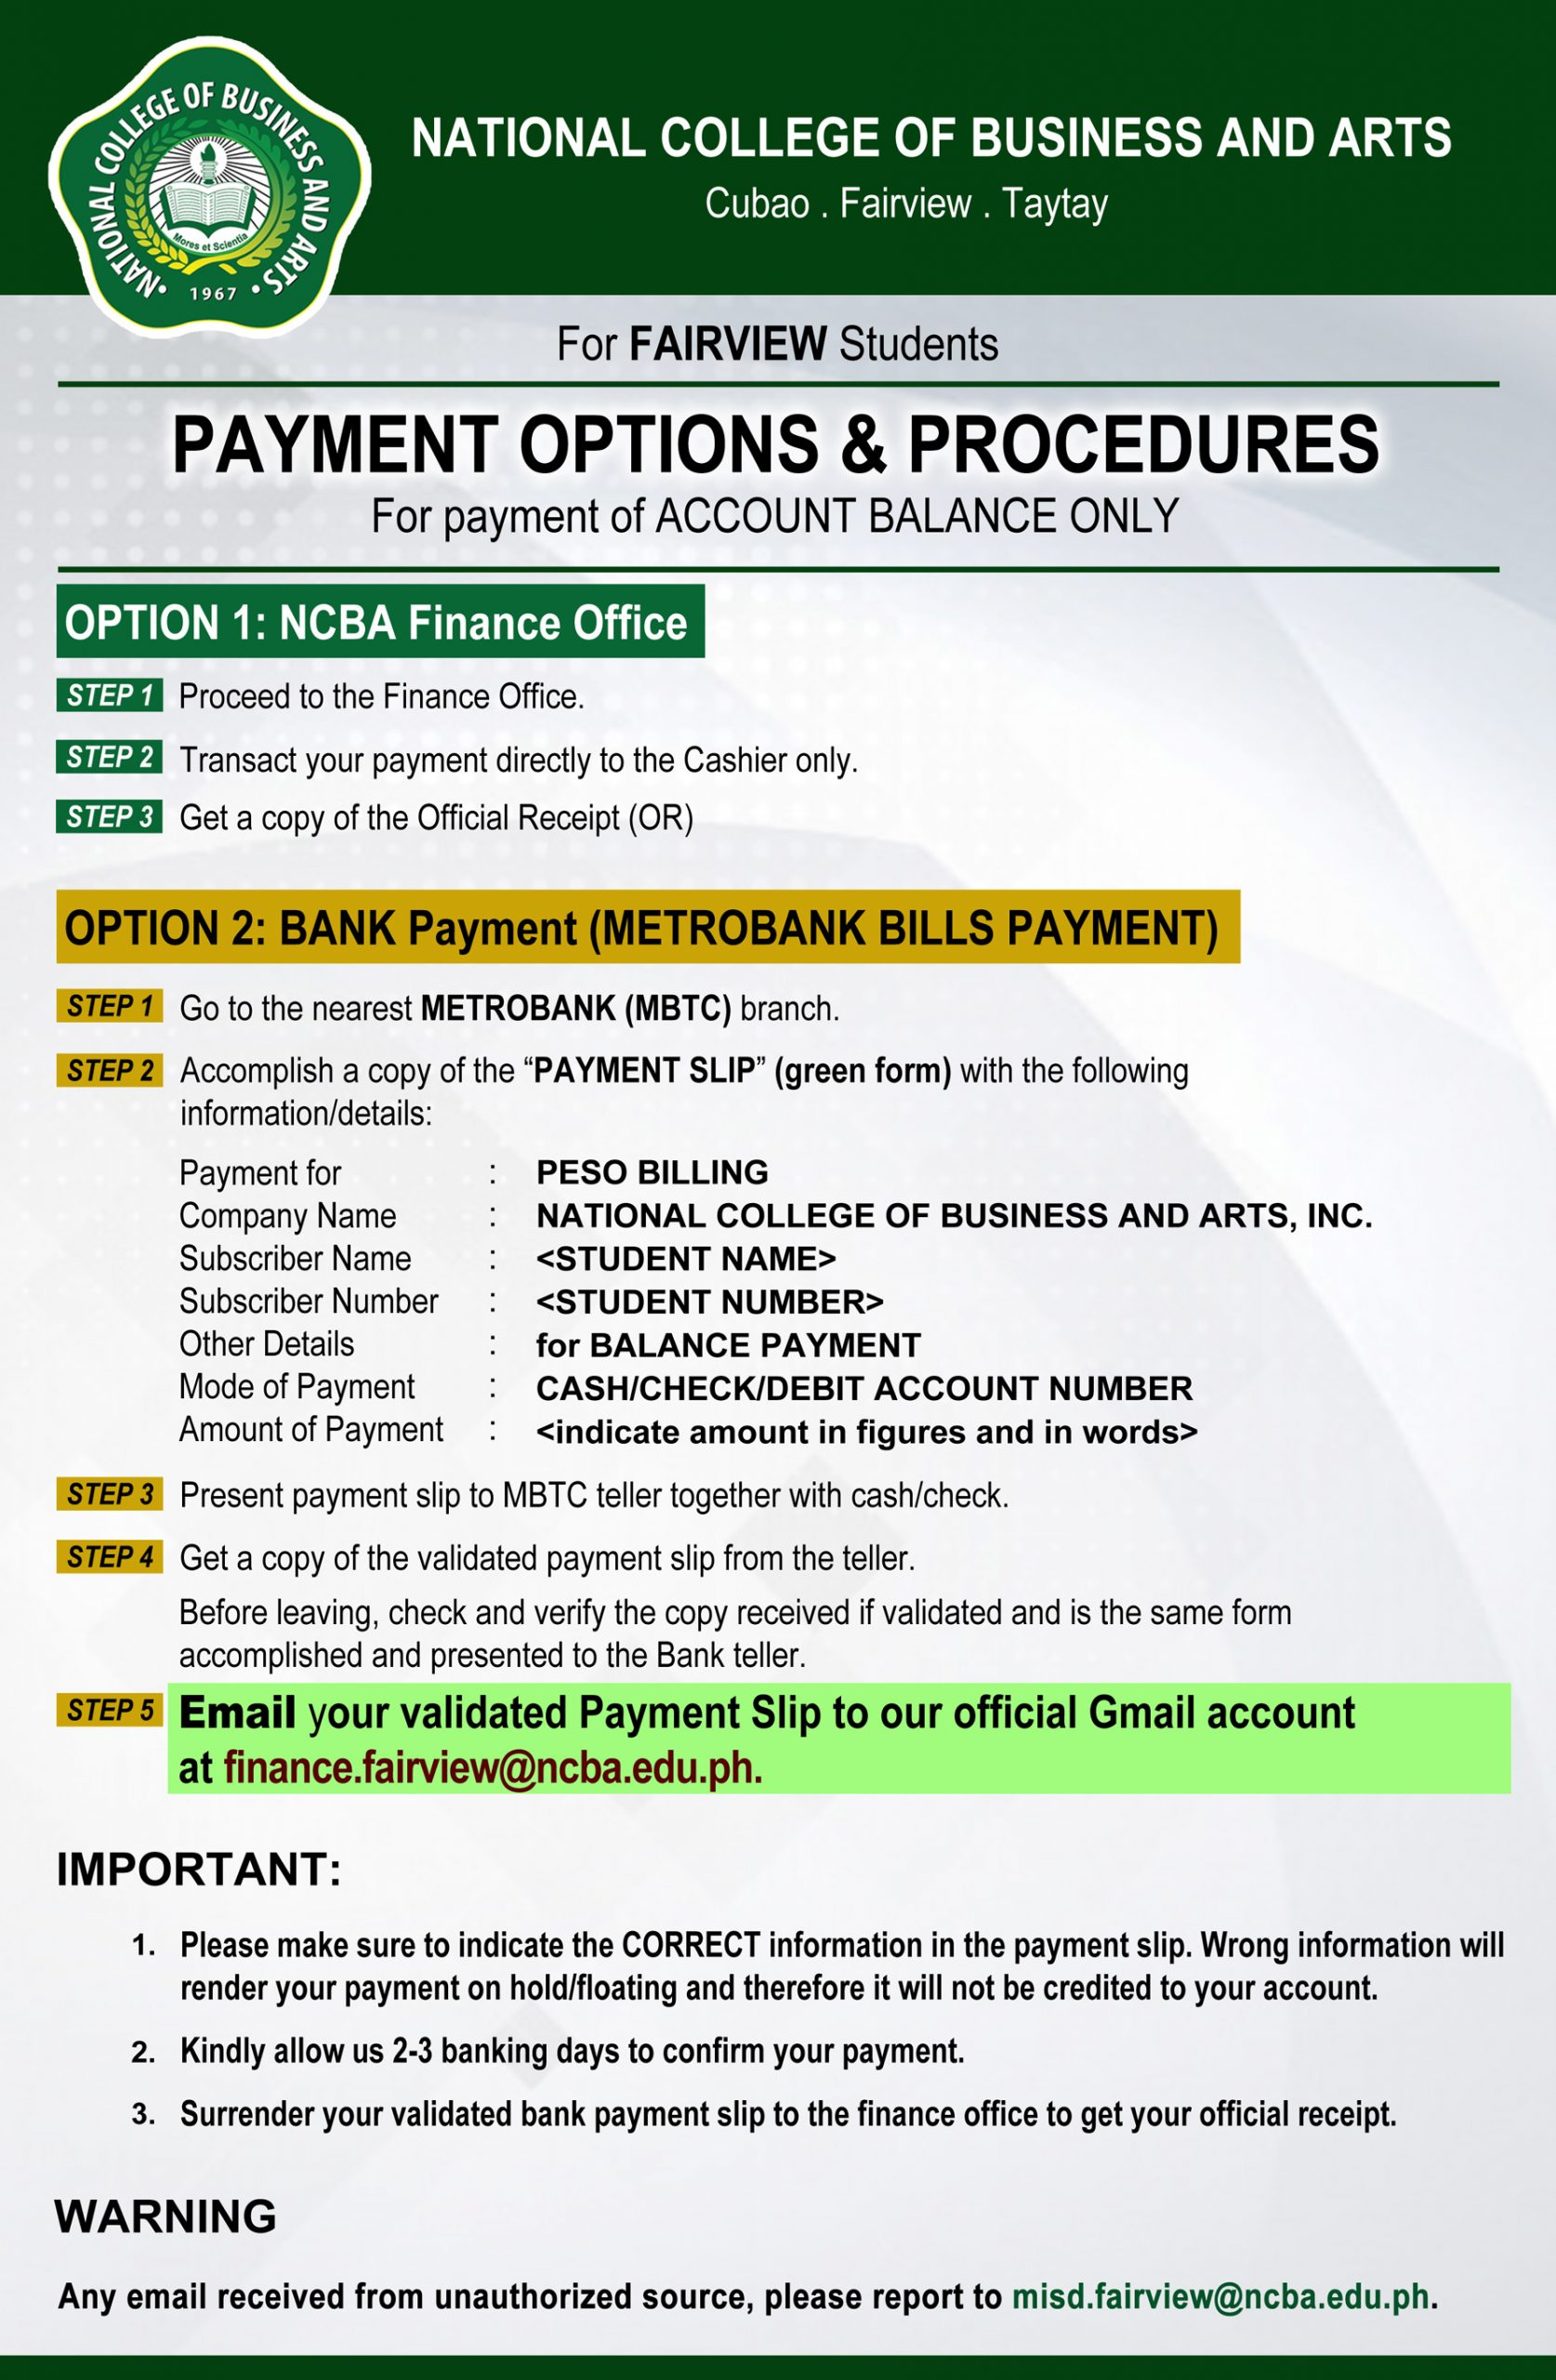 Payment Options for Account Balance - Fairview